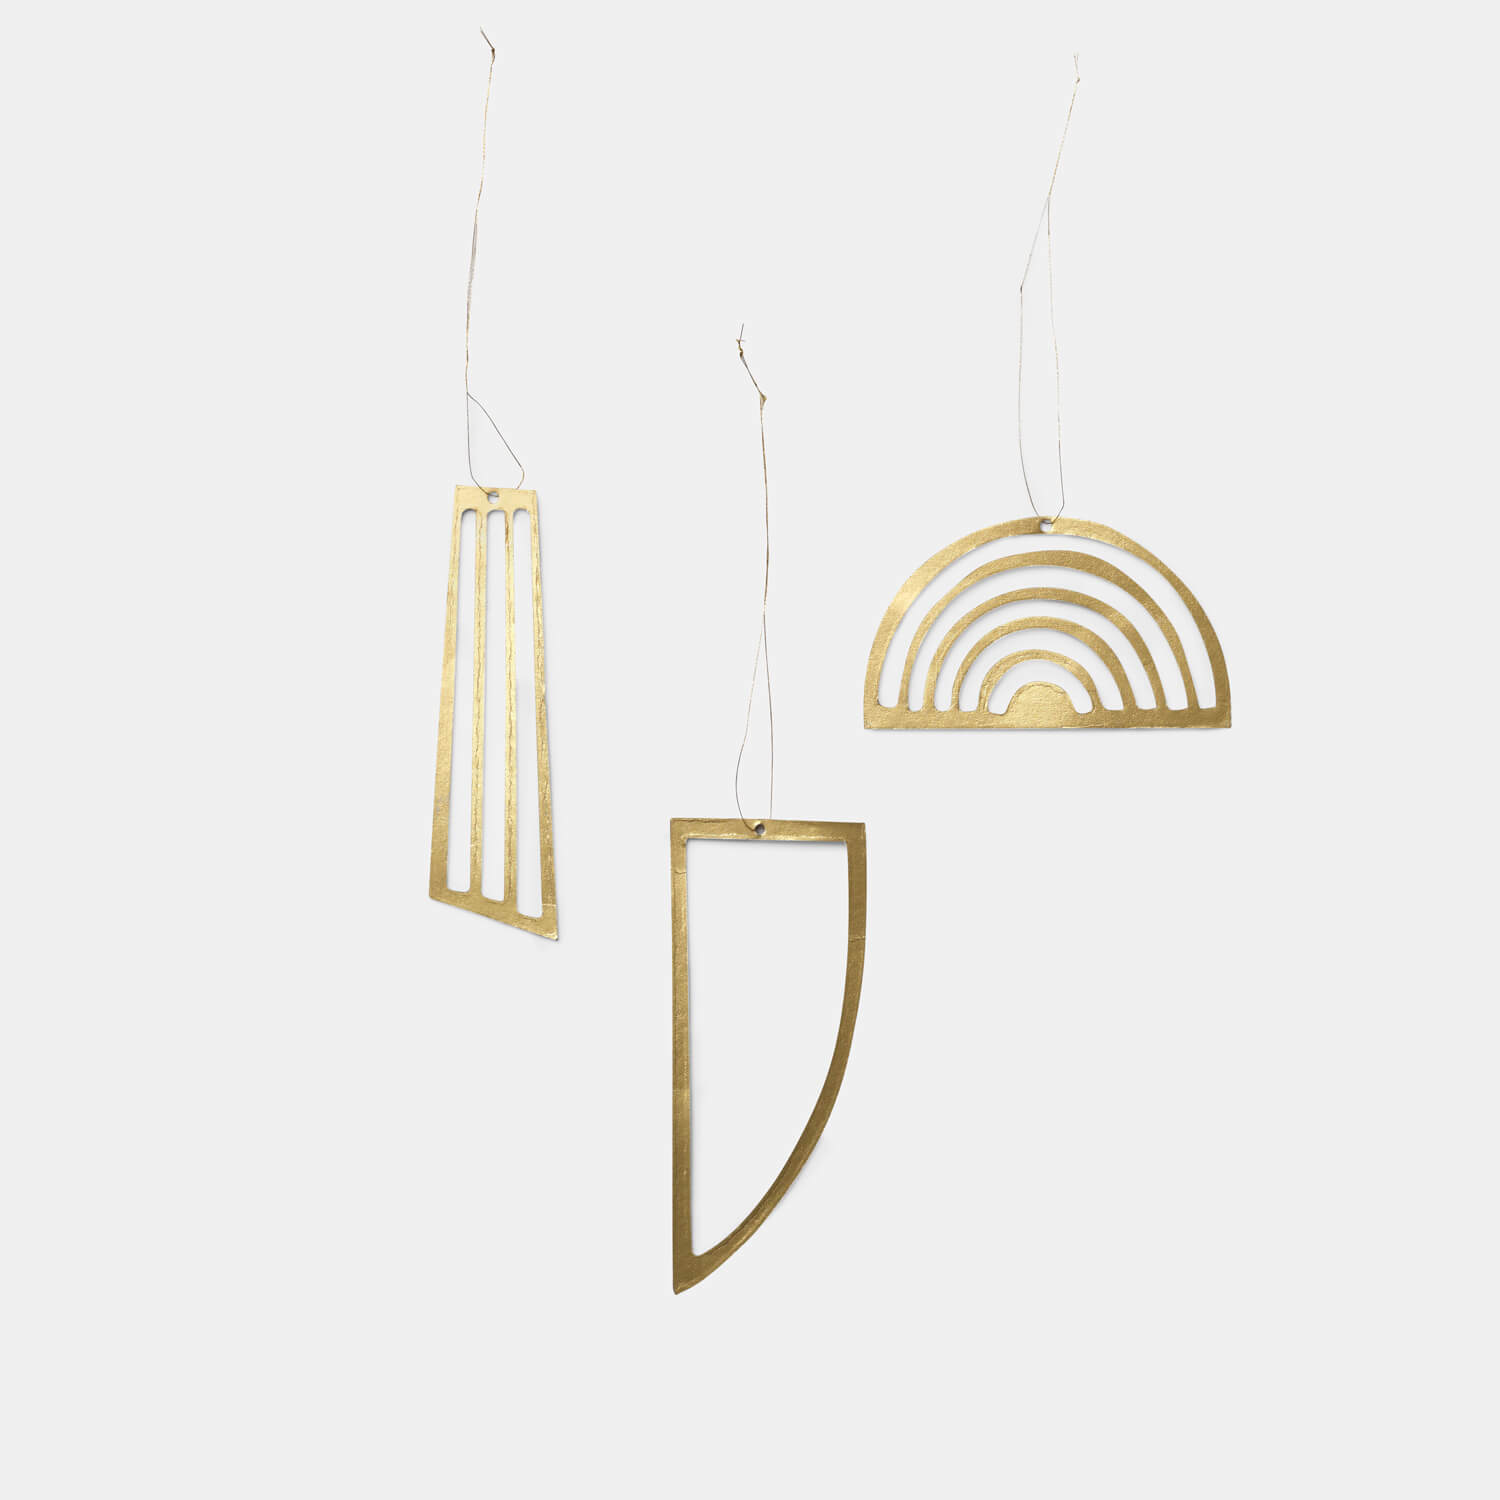 Ferm LIVING – 3er Set Christbaumschmuck Ornamente – Messing